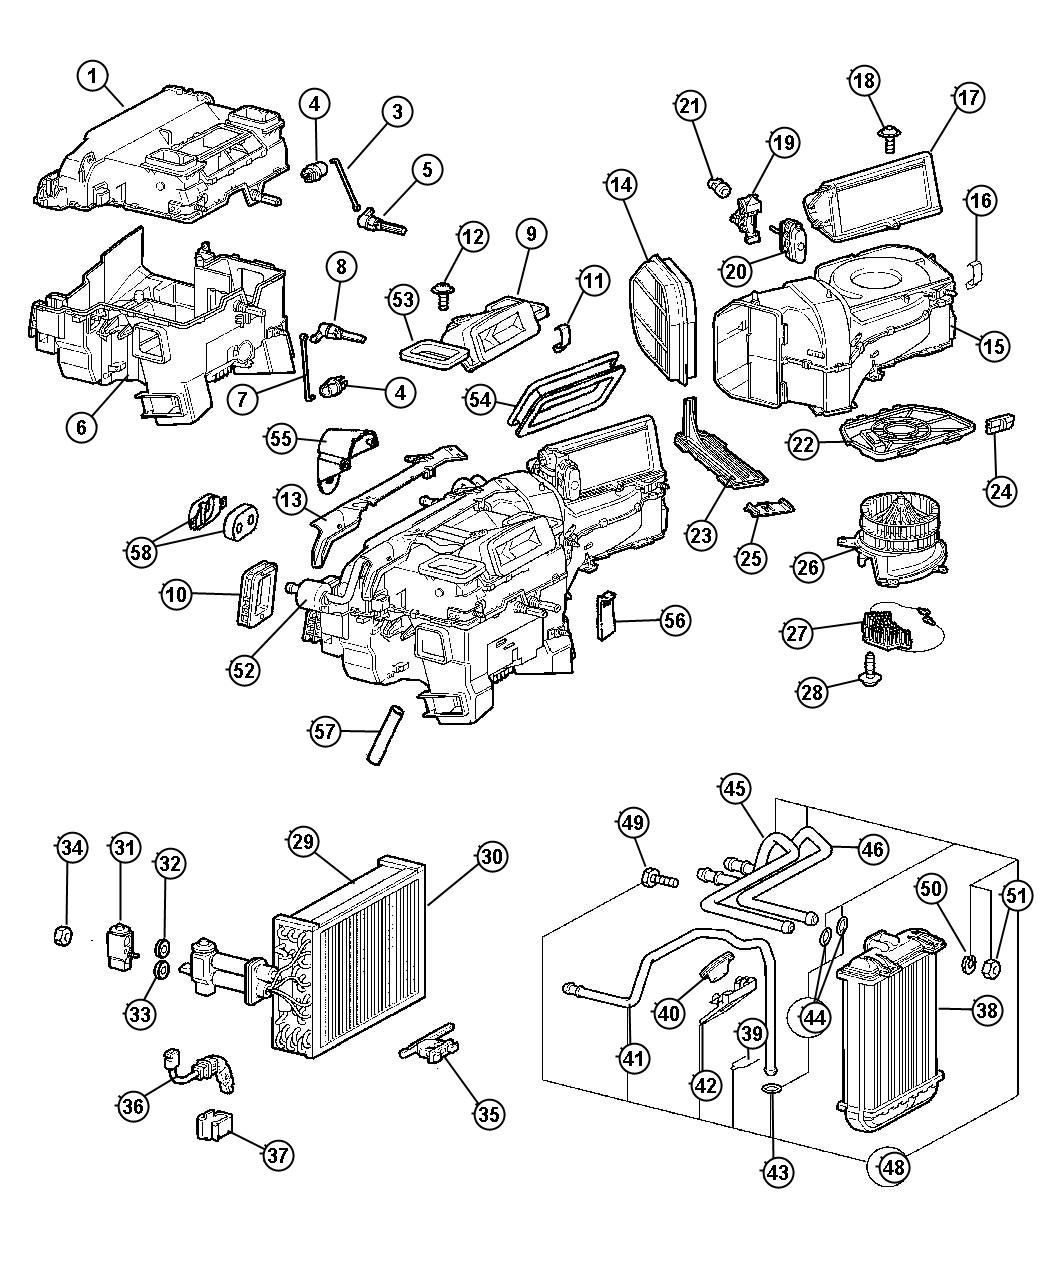 2000 mazda mpv exhaust diagram